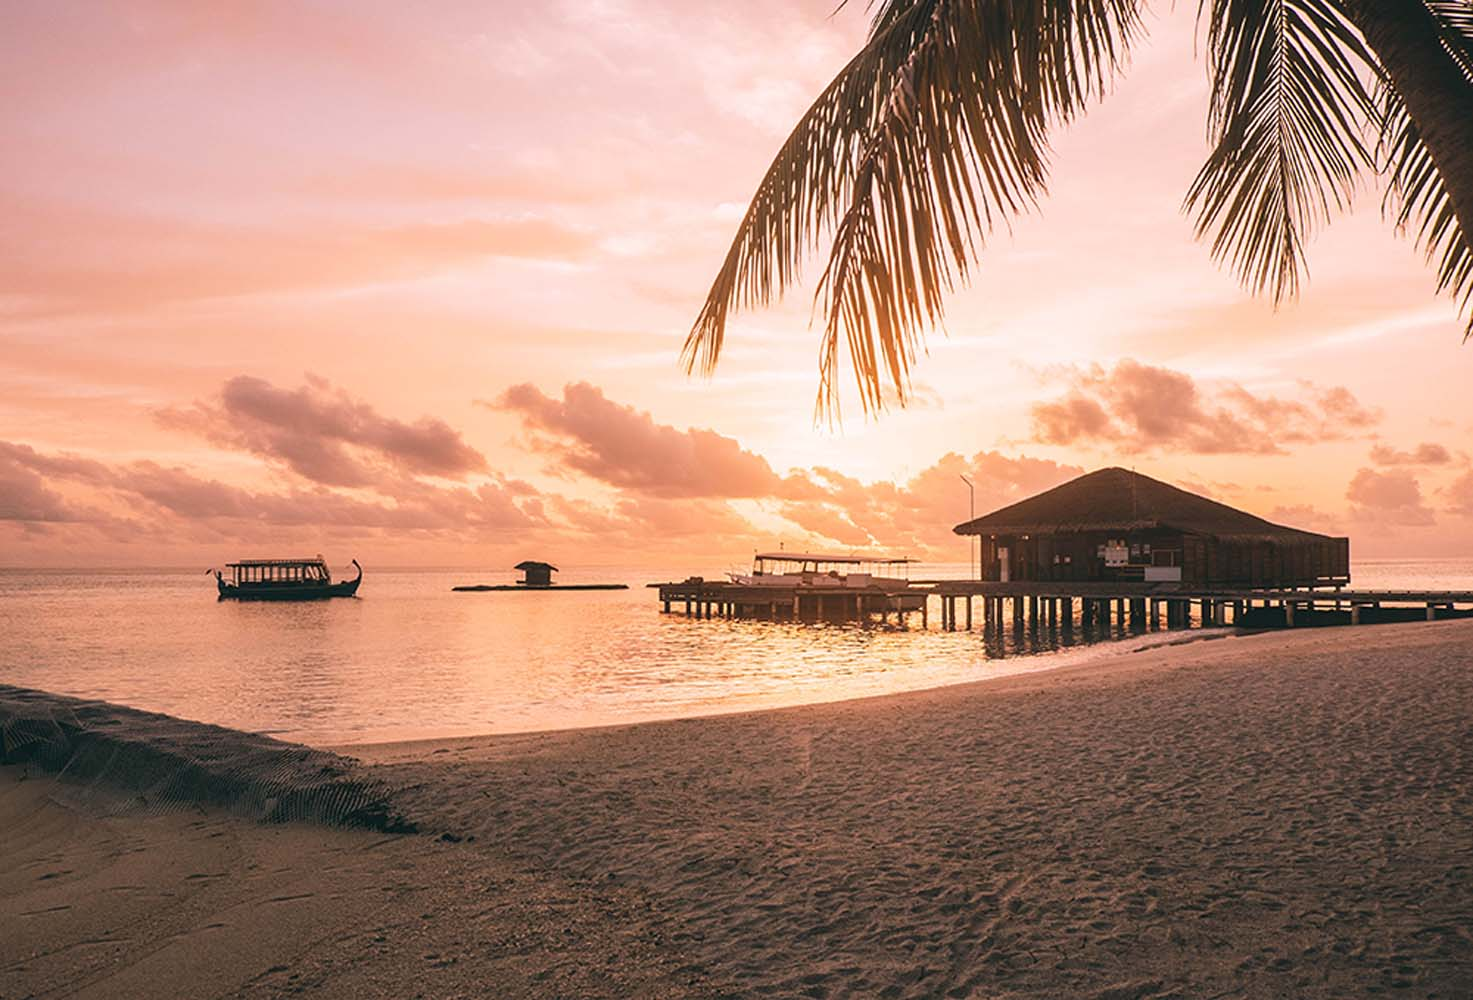 Looking for the perfect Maldives accommodation? I compare my 6 favorite resorts + tips on how to get around & budget for the Maldives.